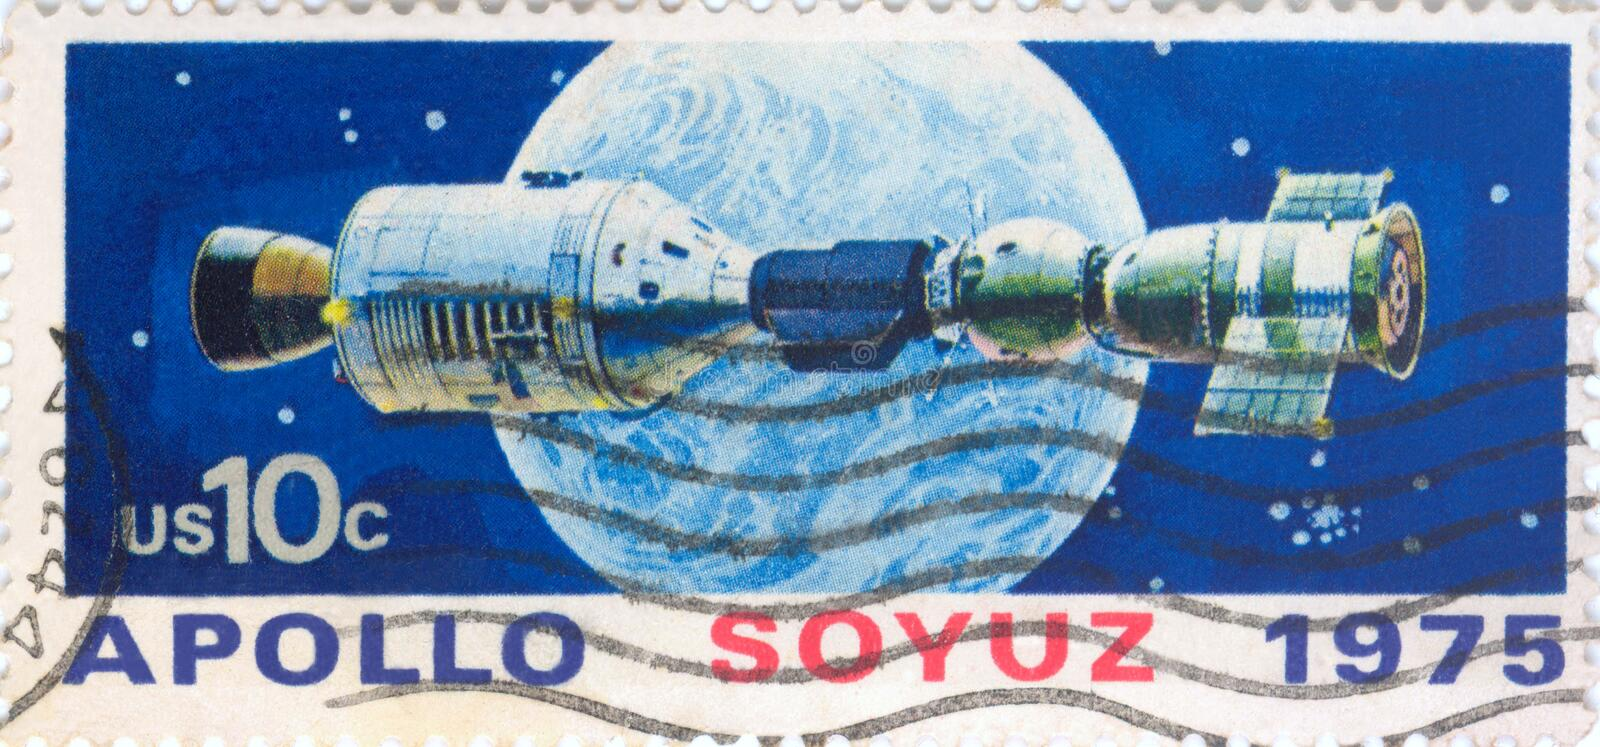 USA postage stamp. United States Postage 10 cent stamp Apollo Soyuz space travel 1975 stock image